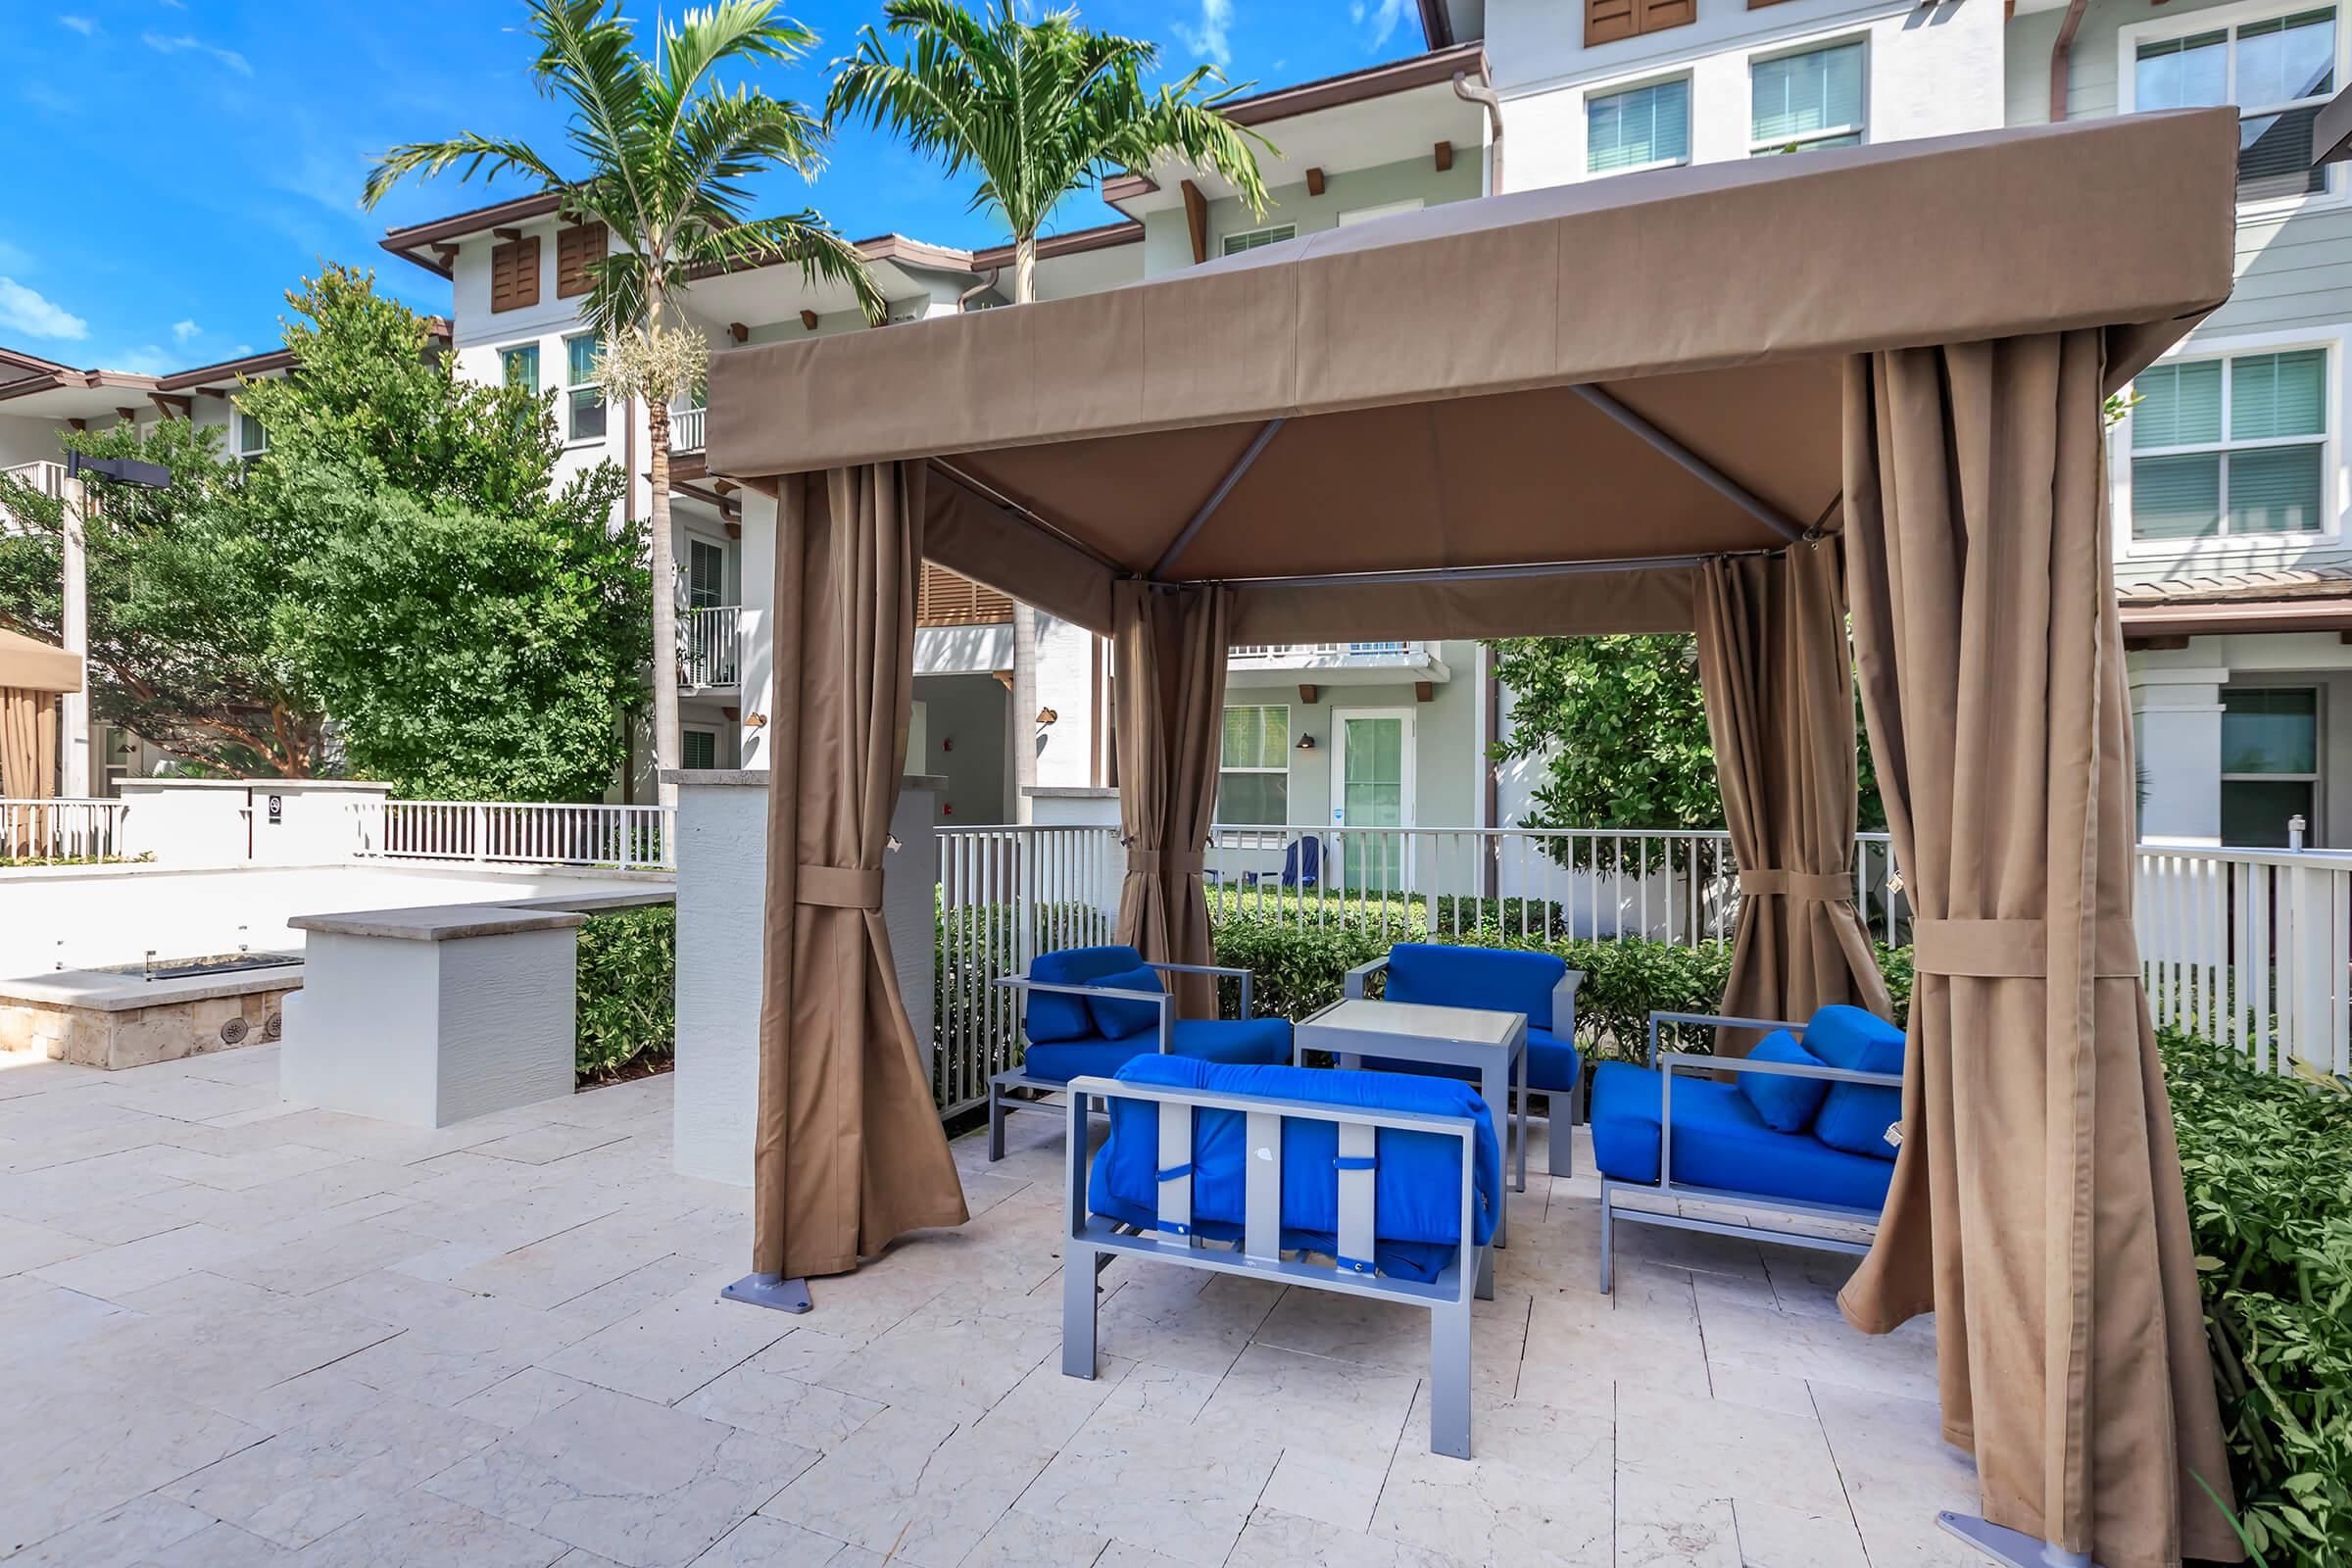 Patio at The Allure Apartments in Jupiter, FL